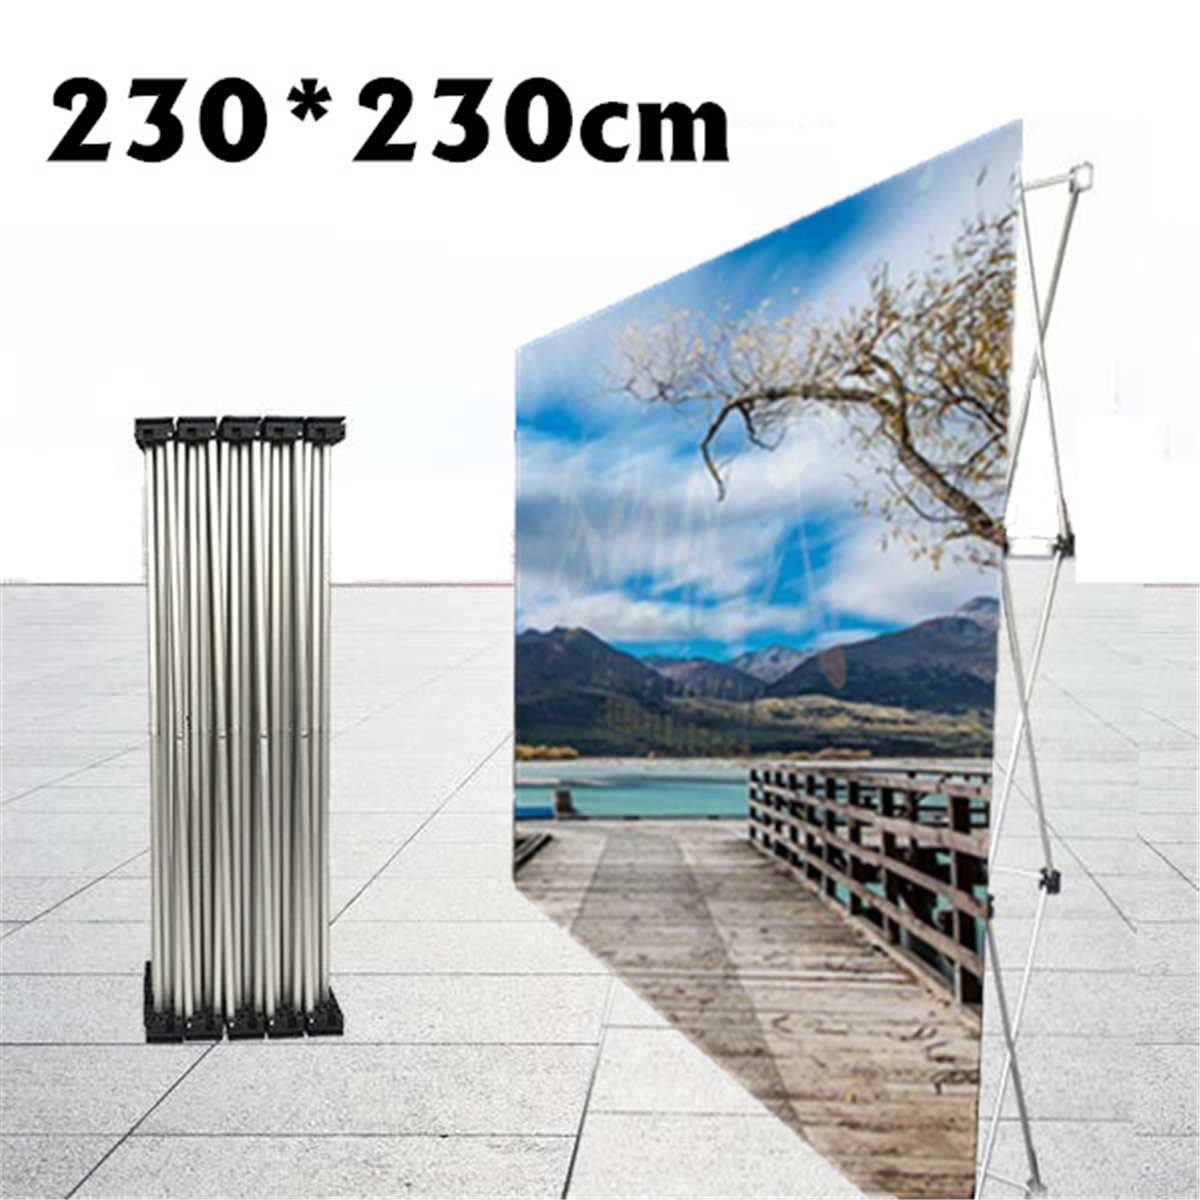 Aluminum Flower Wall Stand Frame for Wedding Backdrops Folding Straight Banner Exhibition Display Stand Trade Advertising ShowAluminum Flower Wall Stand Frame for Wedding Backdrops Folding Straight Banner Exhibition Display Stand Trade Advertising Show